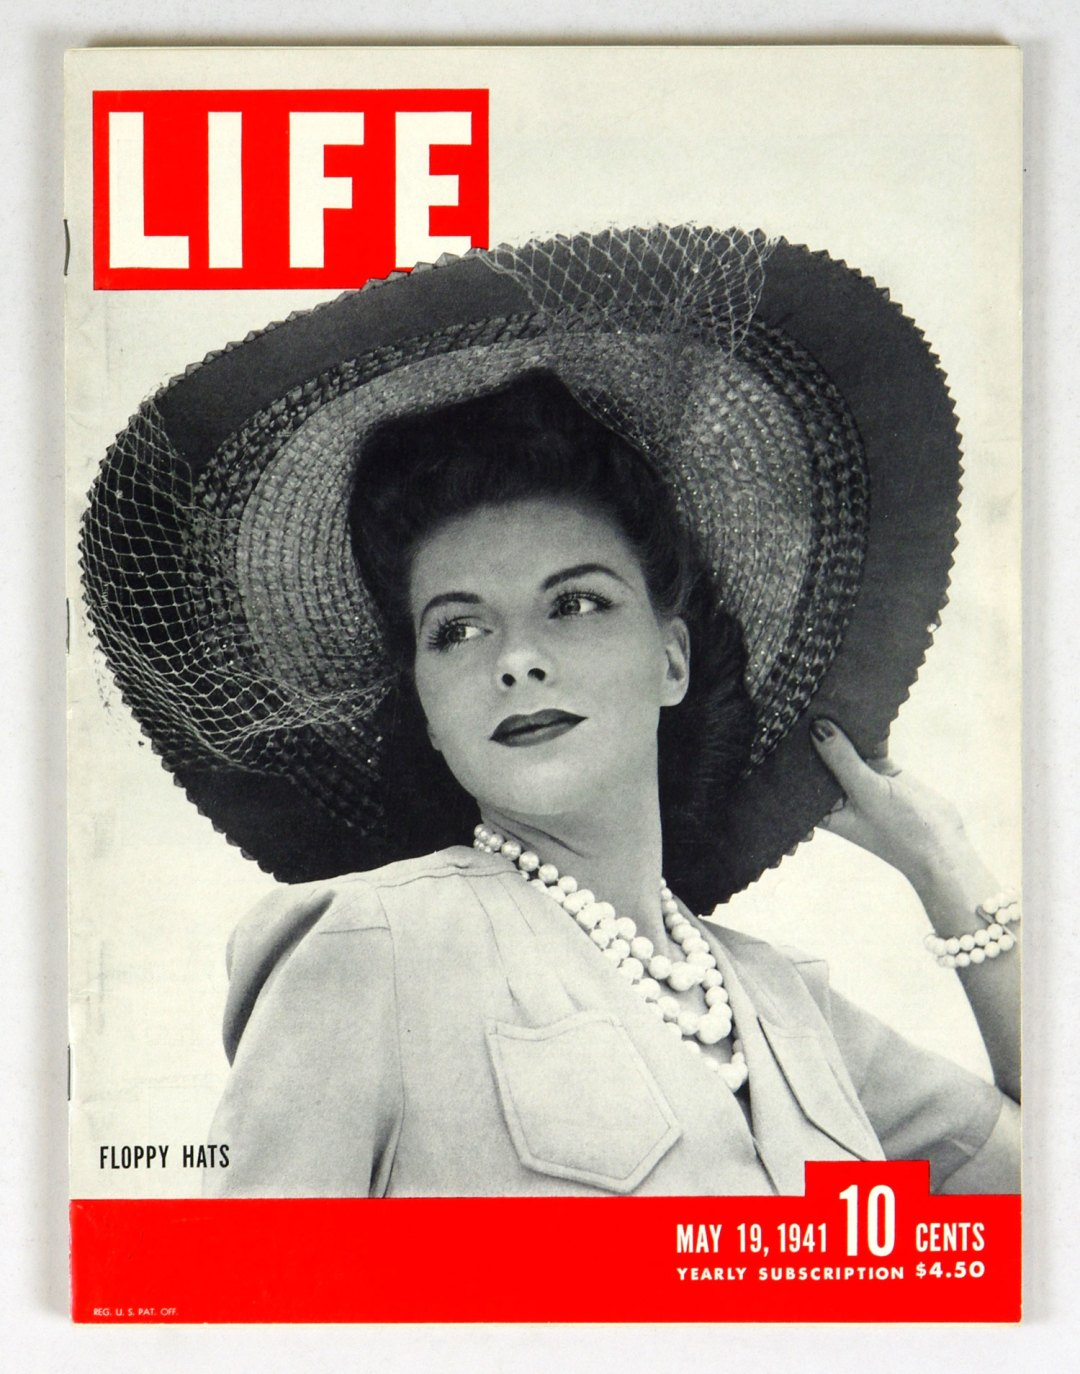 LIFE Magazine 1941 May 19 Floppy Hats